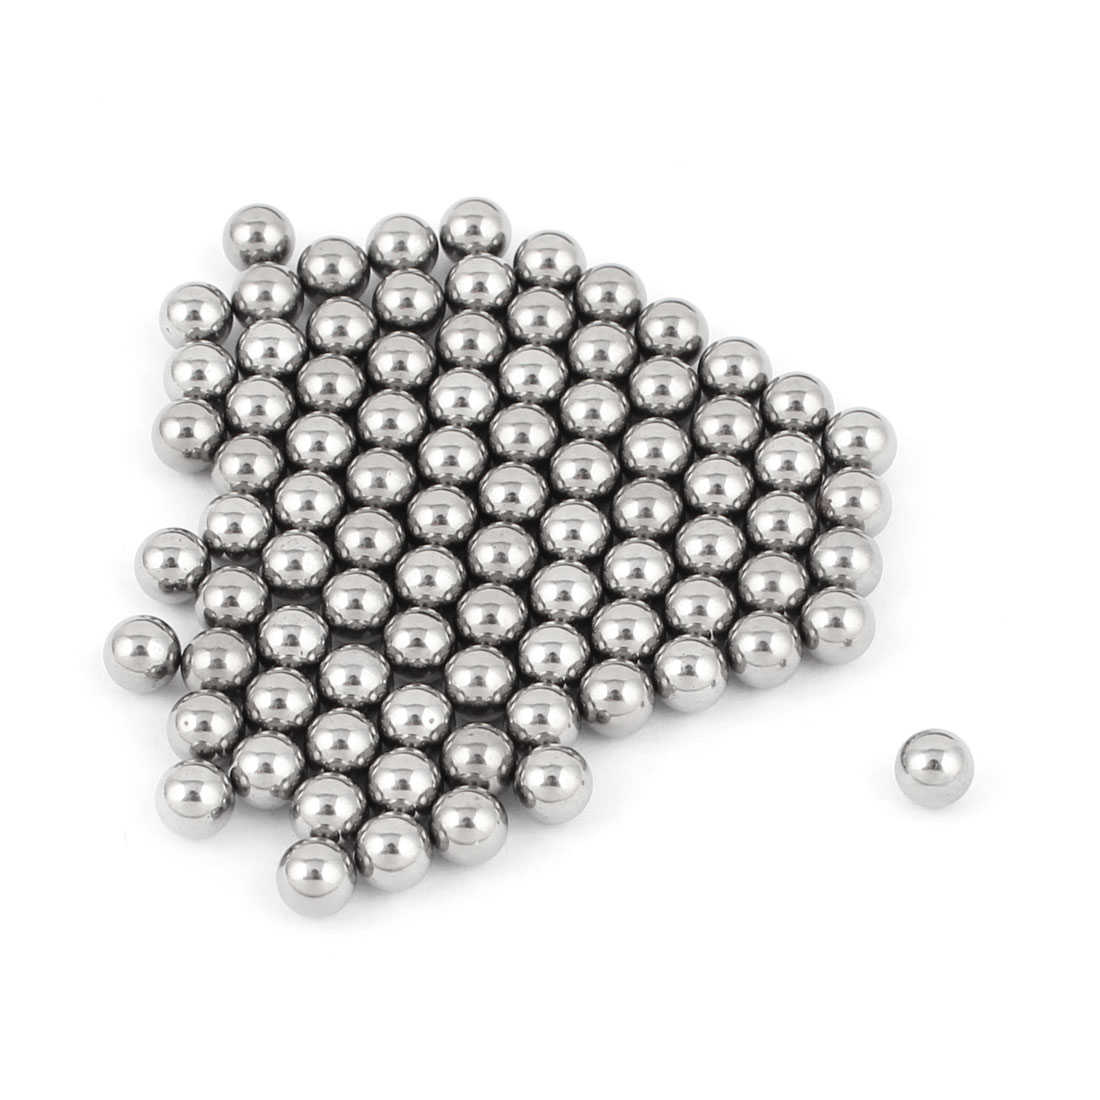 Bicycle Repair Parts 4mm Dia Steel Bearing Balls Silver Tone 100pcs